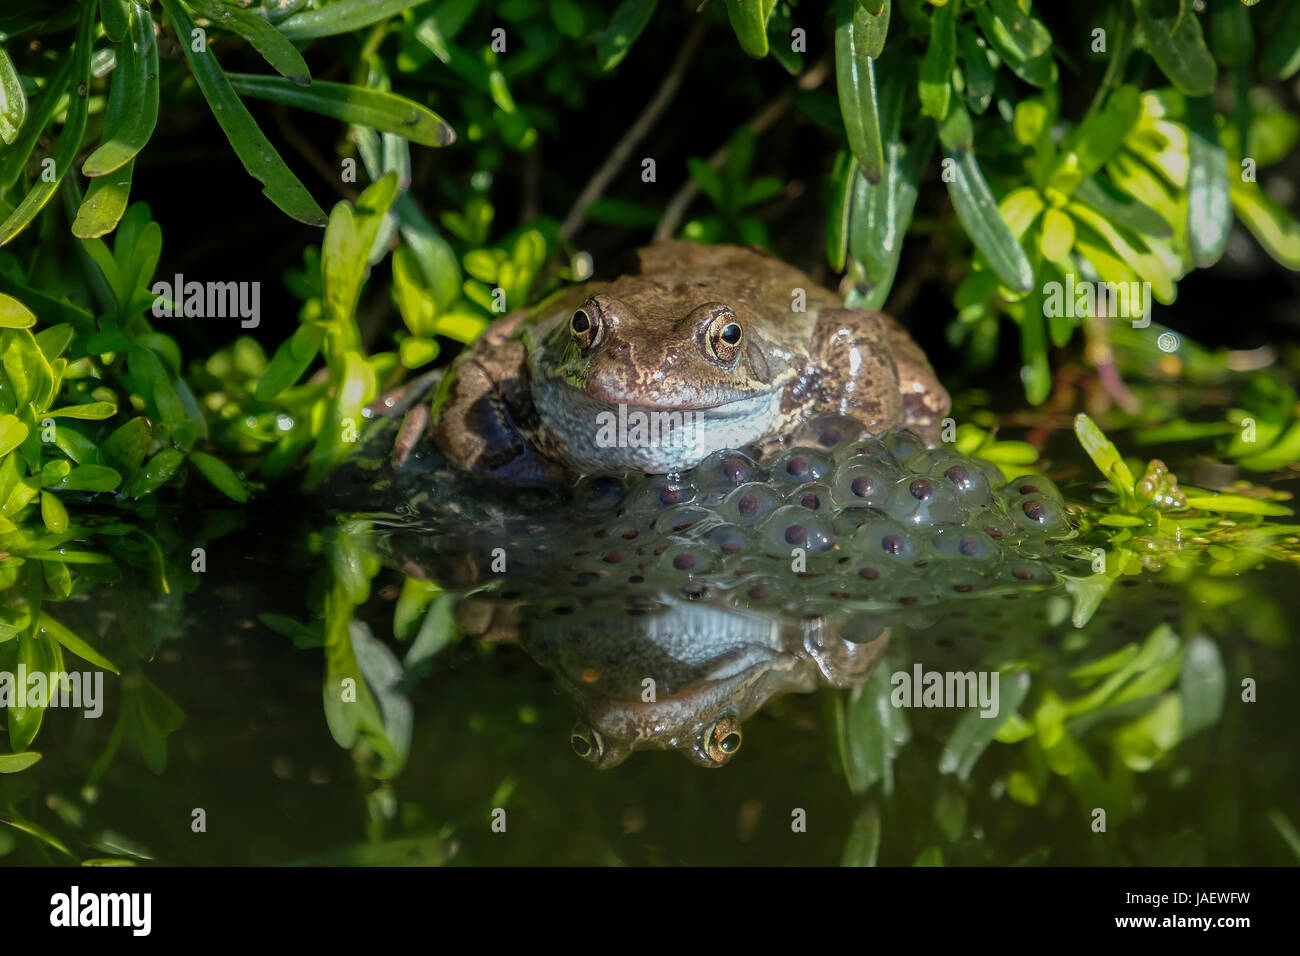 Common Frog  (Rana tempraria) Frogs Spawn - Stock Image